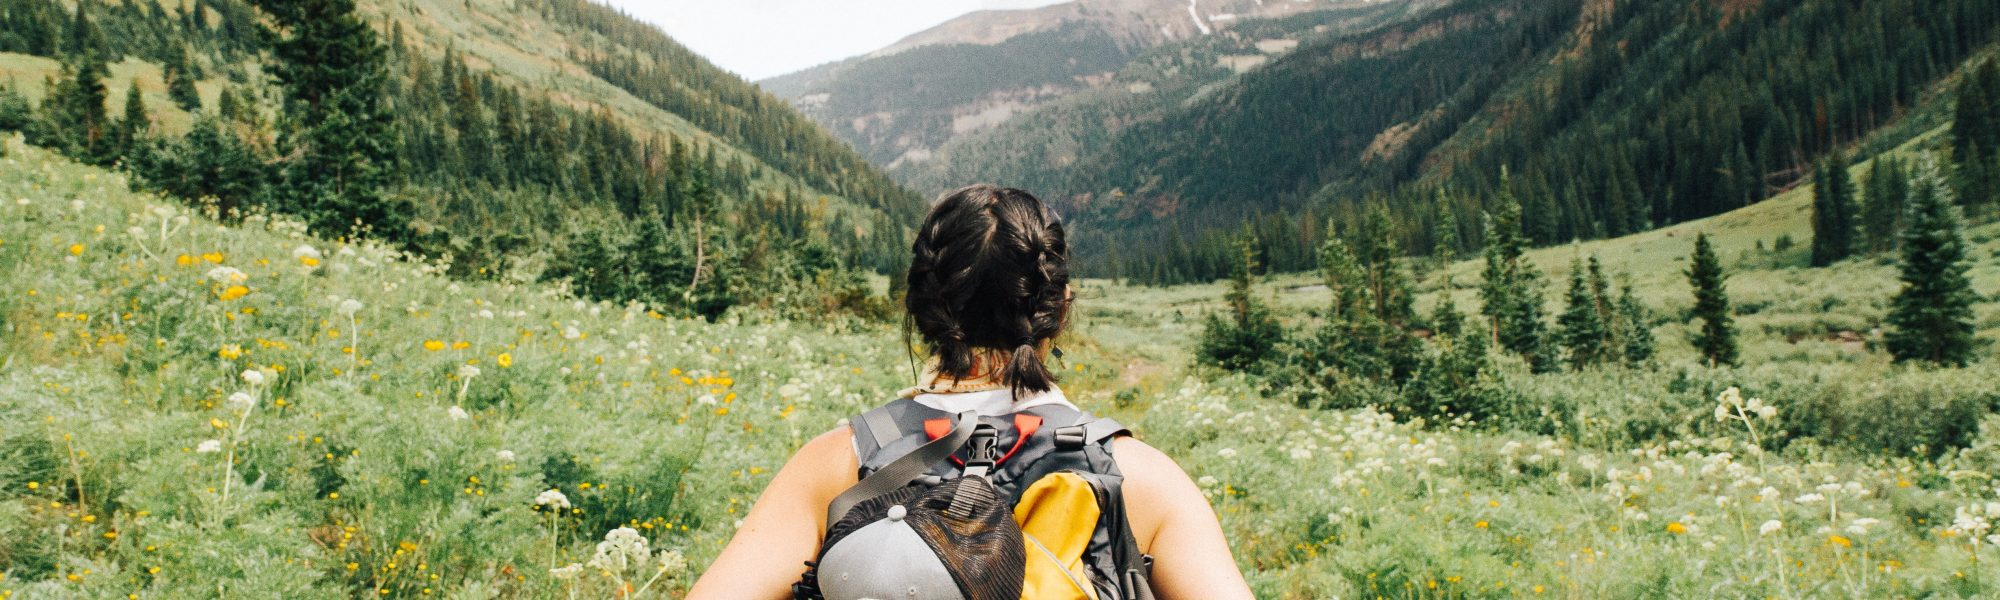 21 Tips for Solo Women Travelers